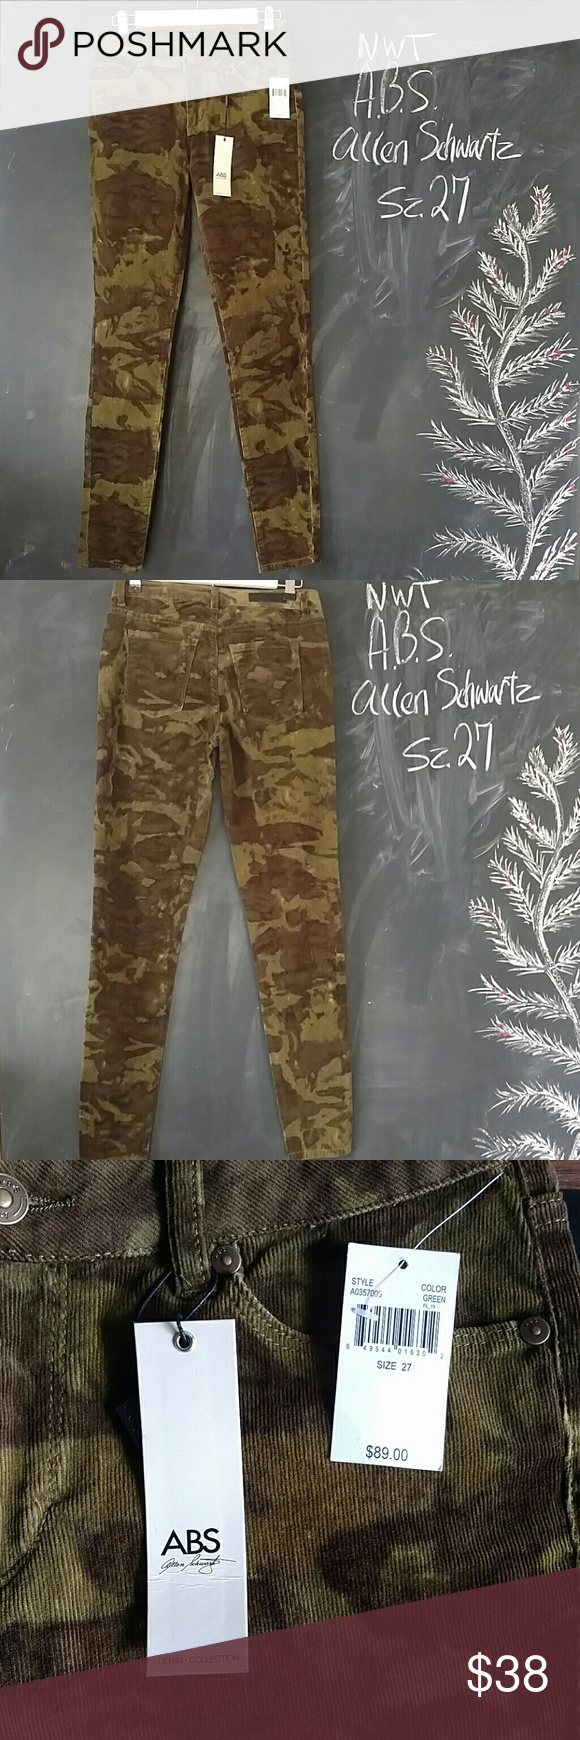 .B.S Allen Swartz Camo Corduroy Skinny Pants 27 NWT A.B.S. Allen Swartz camo pants.  Skinny style.  Green camo pattern.  Corduroy Cotton spandex material. Waist 27-28 in. Inseam 29 in. Soft thin lined cords. Excellent, new condition.     Smoke and Pet free environment.  No trades. Please read all description for details. ABS Allen Schwartz Pants